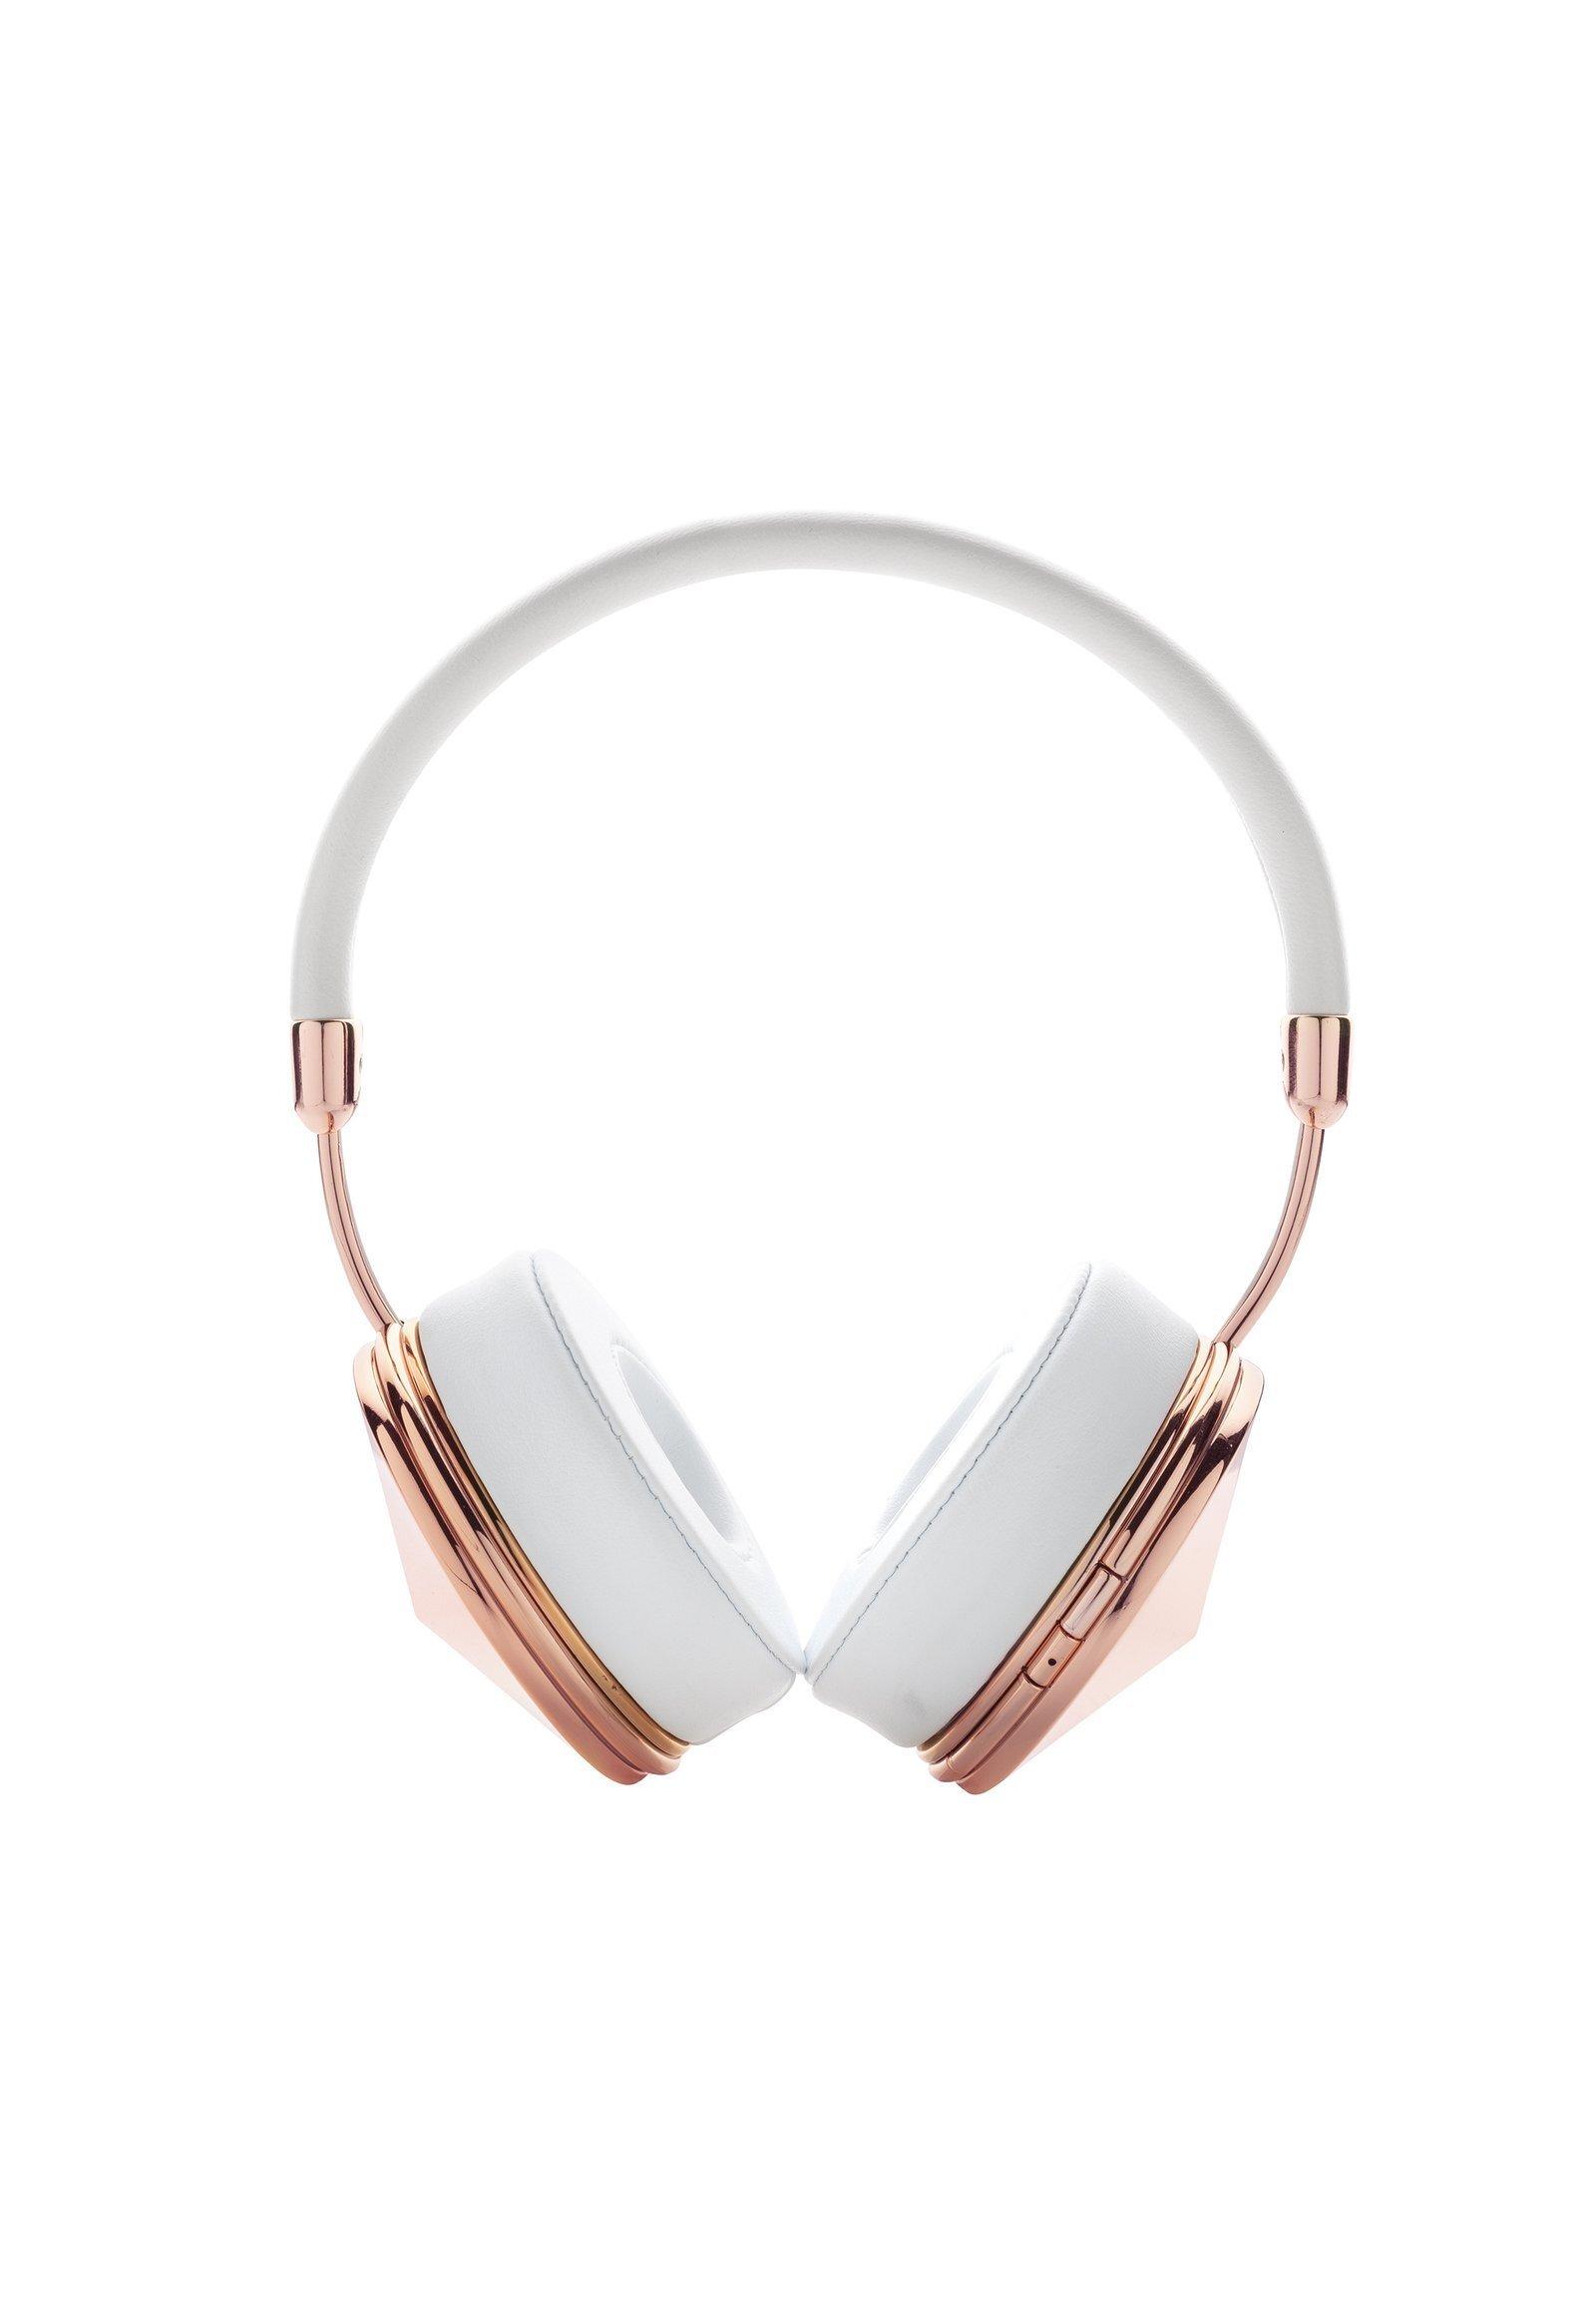 Homme TAYLOR RG - WIRED - Casque